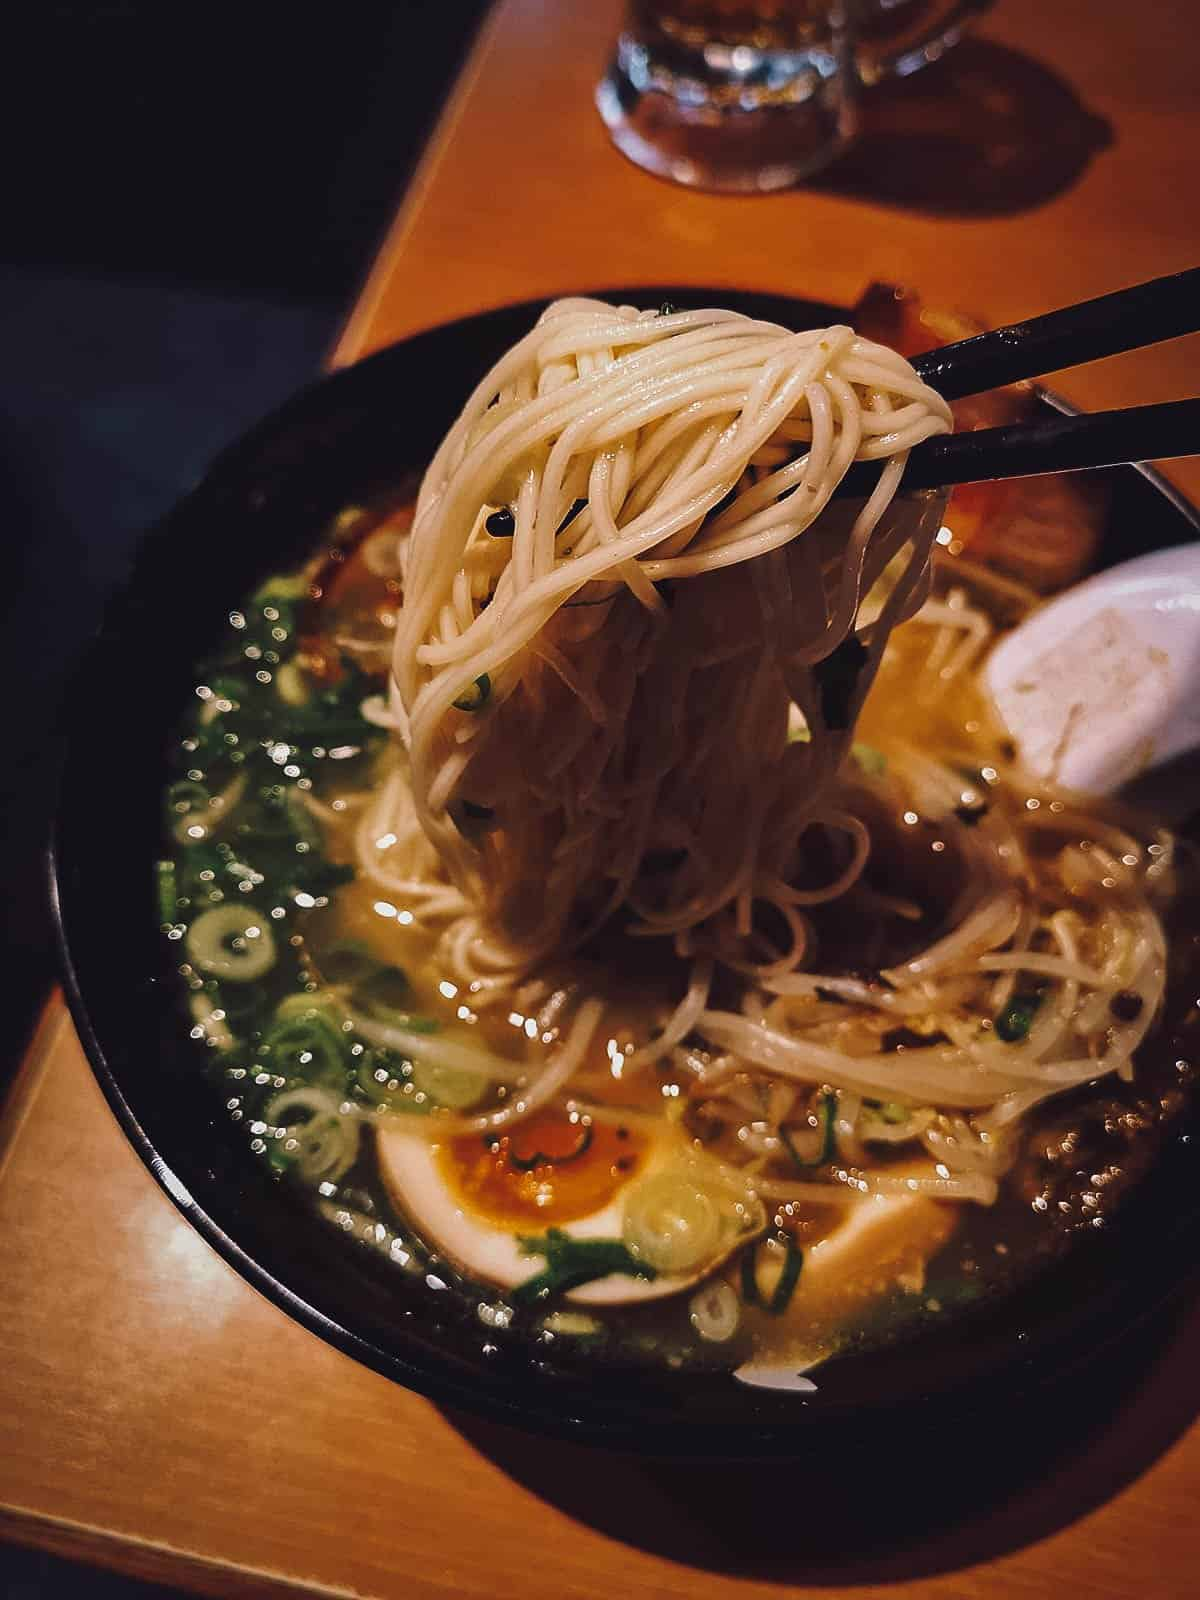 Hakata ramen at Shodai Hide-chan in Fukuoka